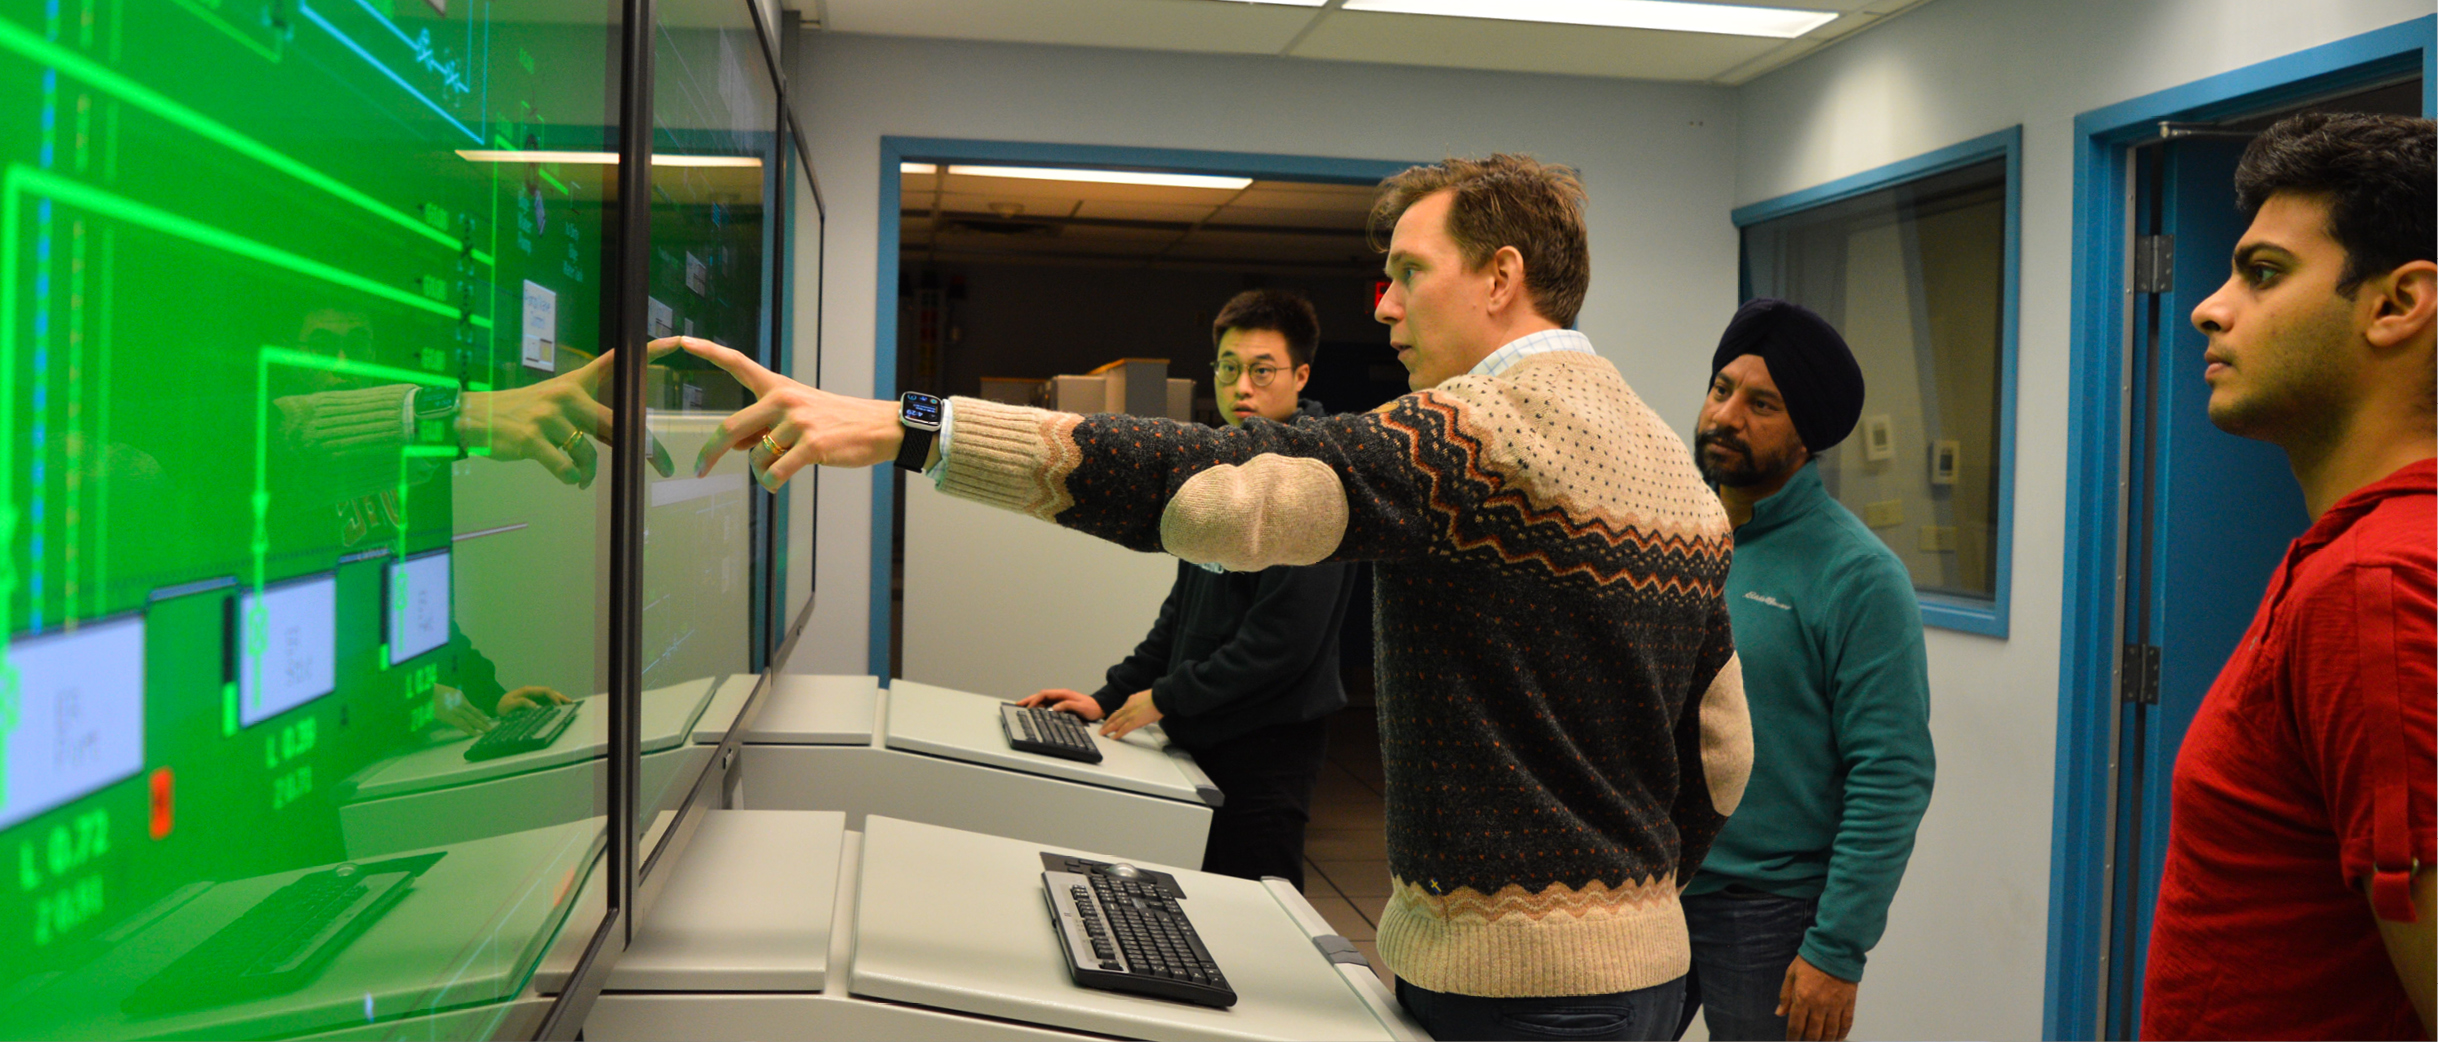 Dr. Fredrik Ahlgren demonstrates engine room simulator to Naval Architecture and Marine Engineering students